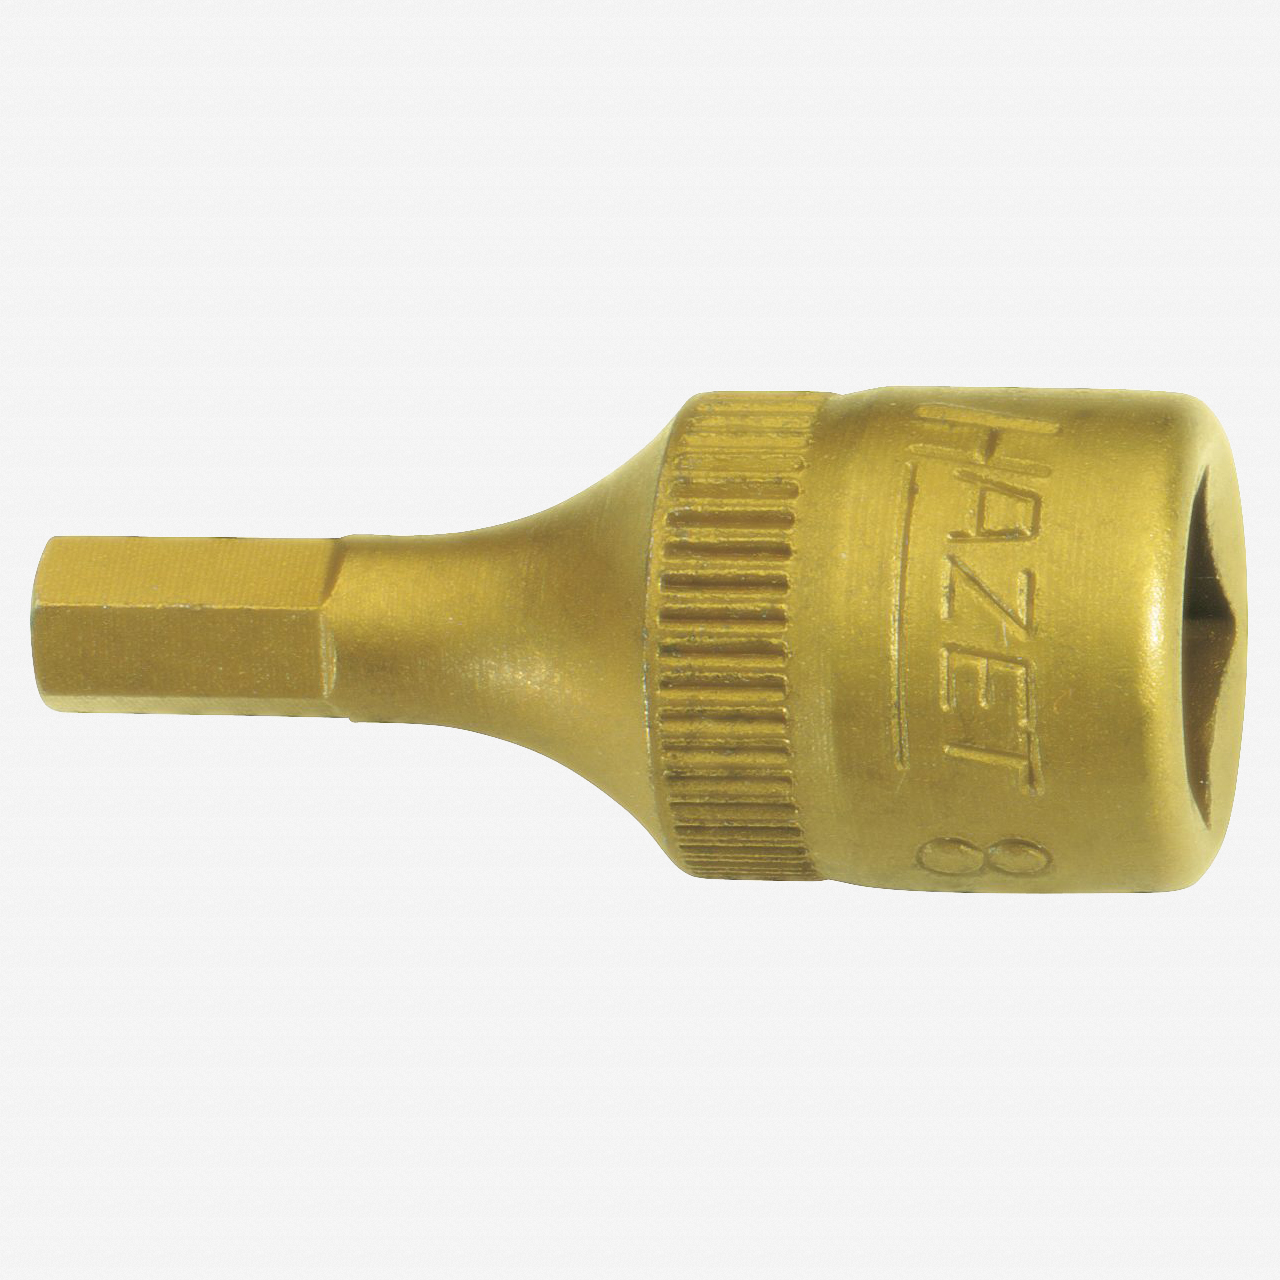 "Hazet 8501-6 6mm Hex TiN 1/4"" Socket - KC Tool"